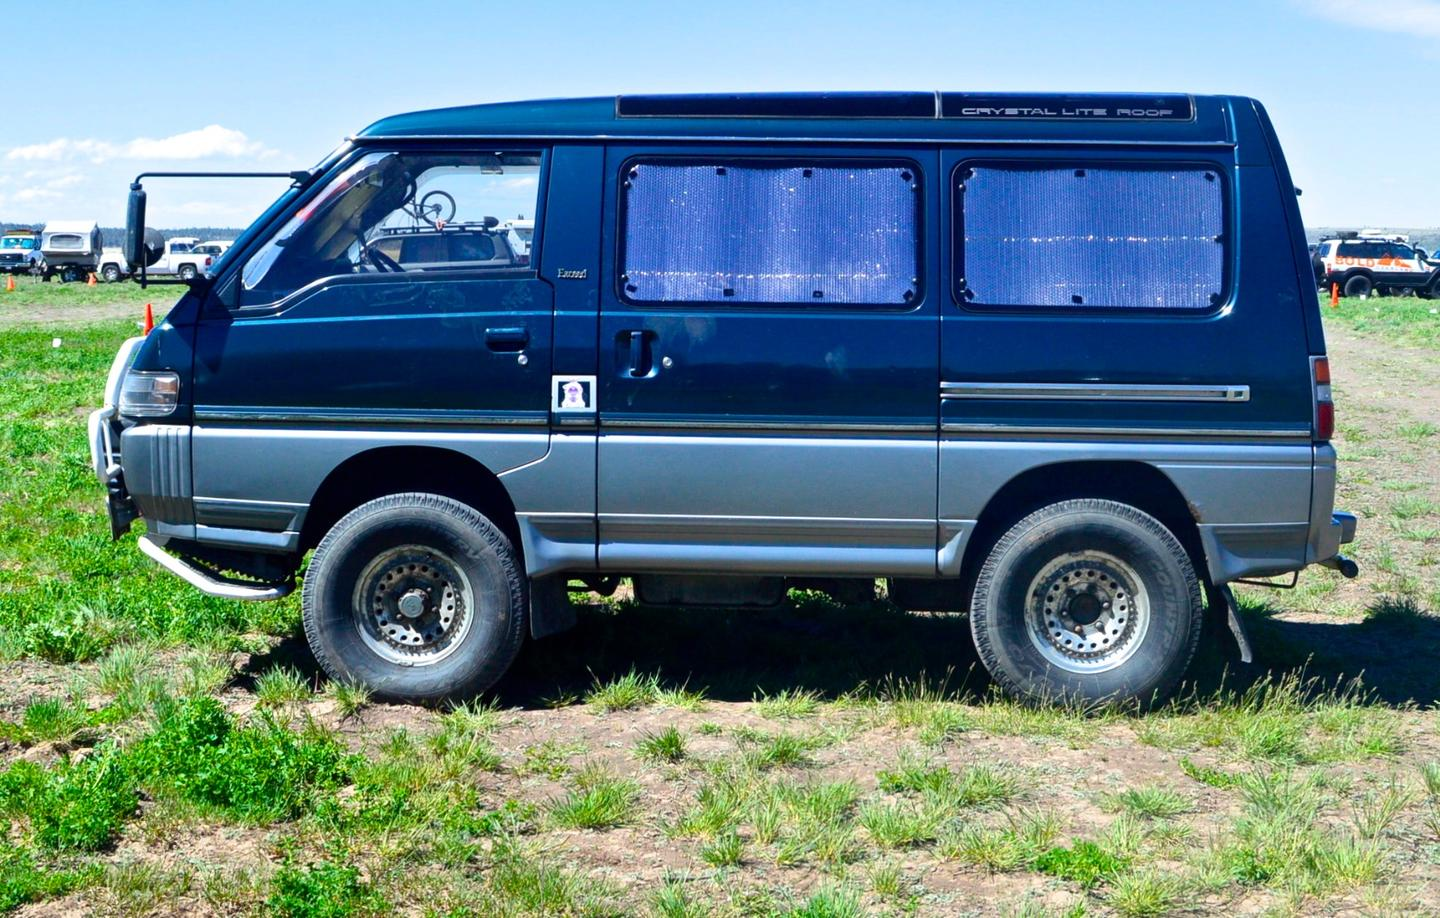 This Mitsubishi Delica was one of the first vehicles to greet us at OXW 2016 and also one of our favorites of the whole show